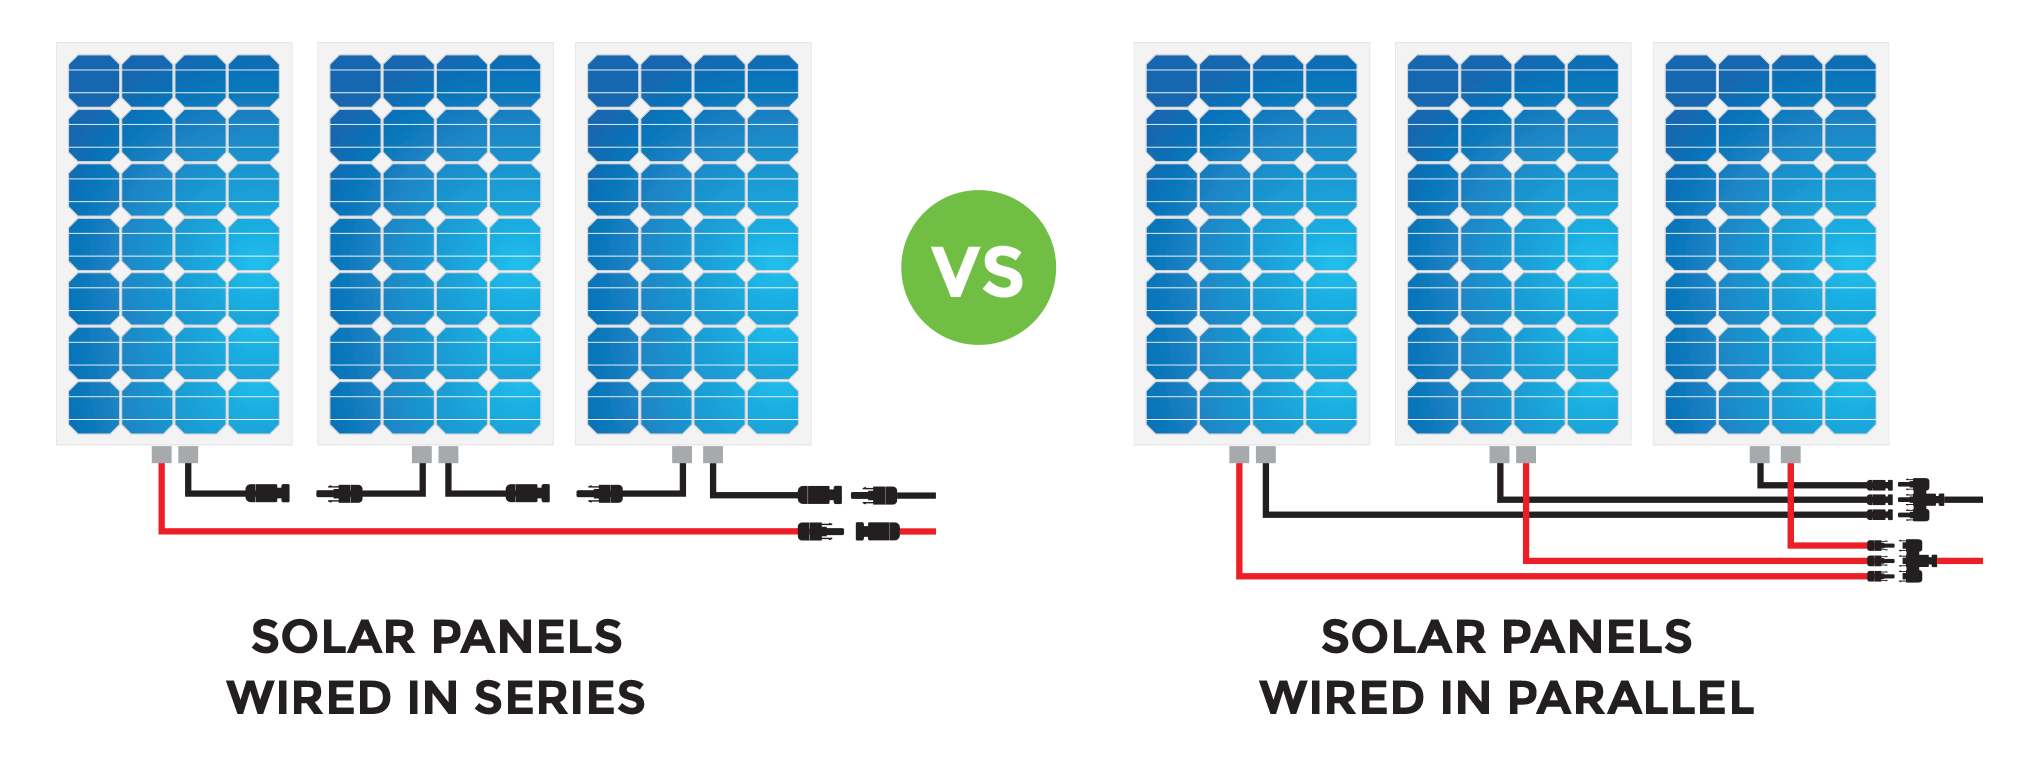 wiring solar panels in series vs parallel